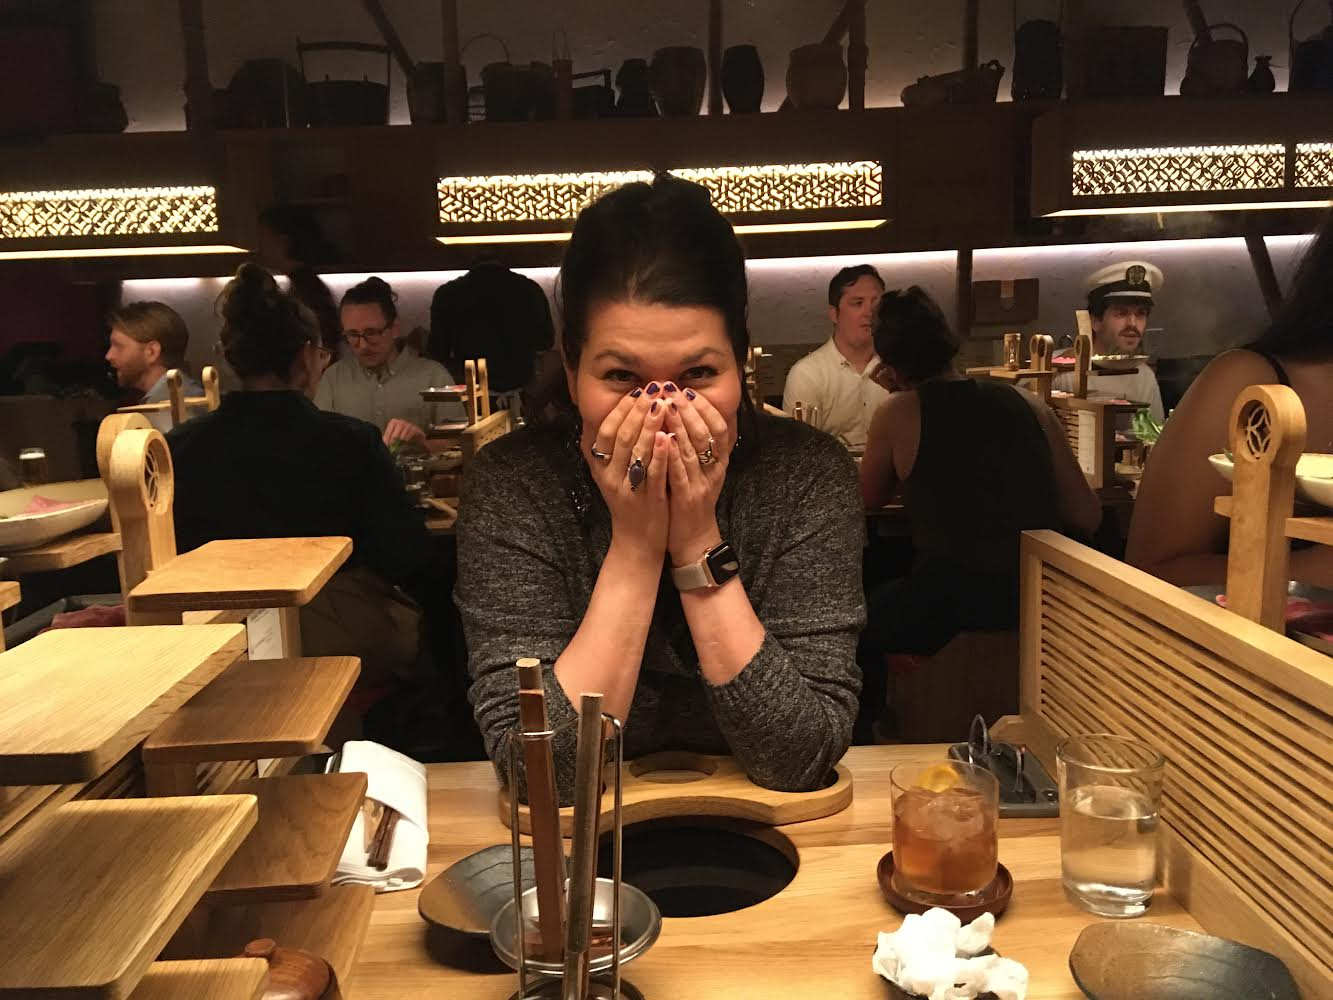 A woman sitting at a restaurant table with hands on her face